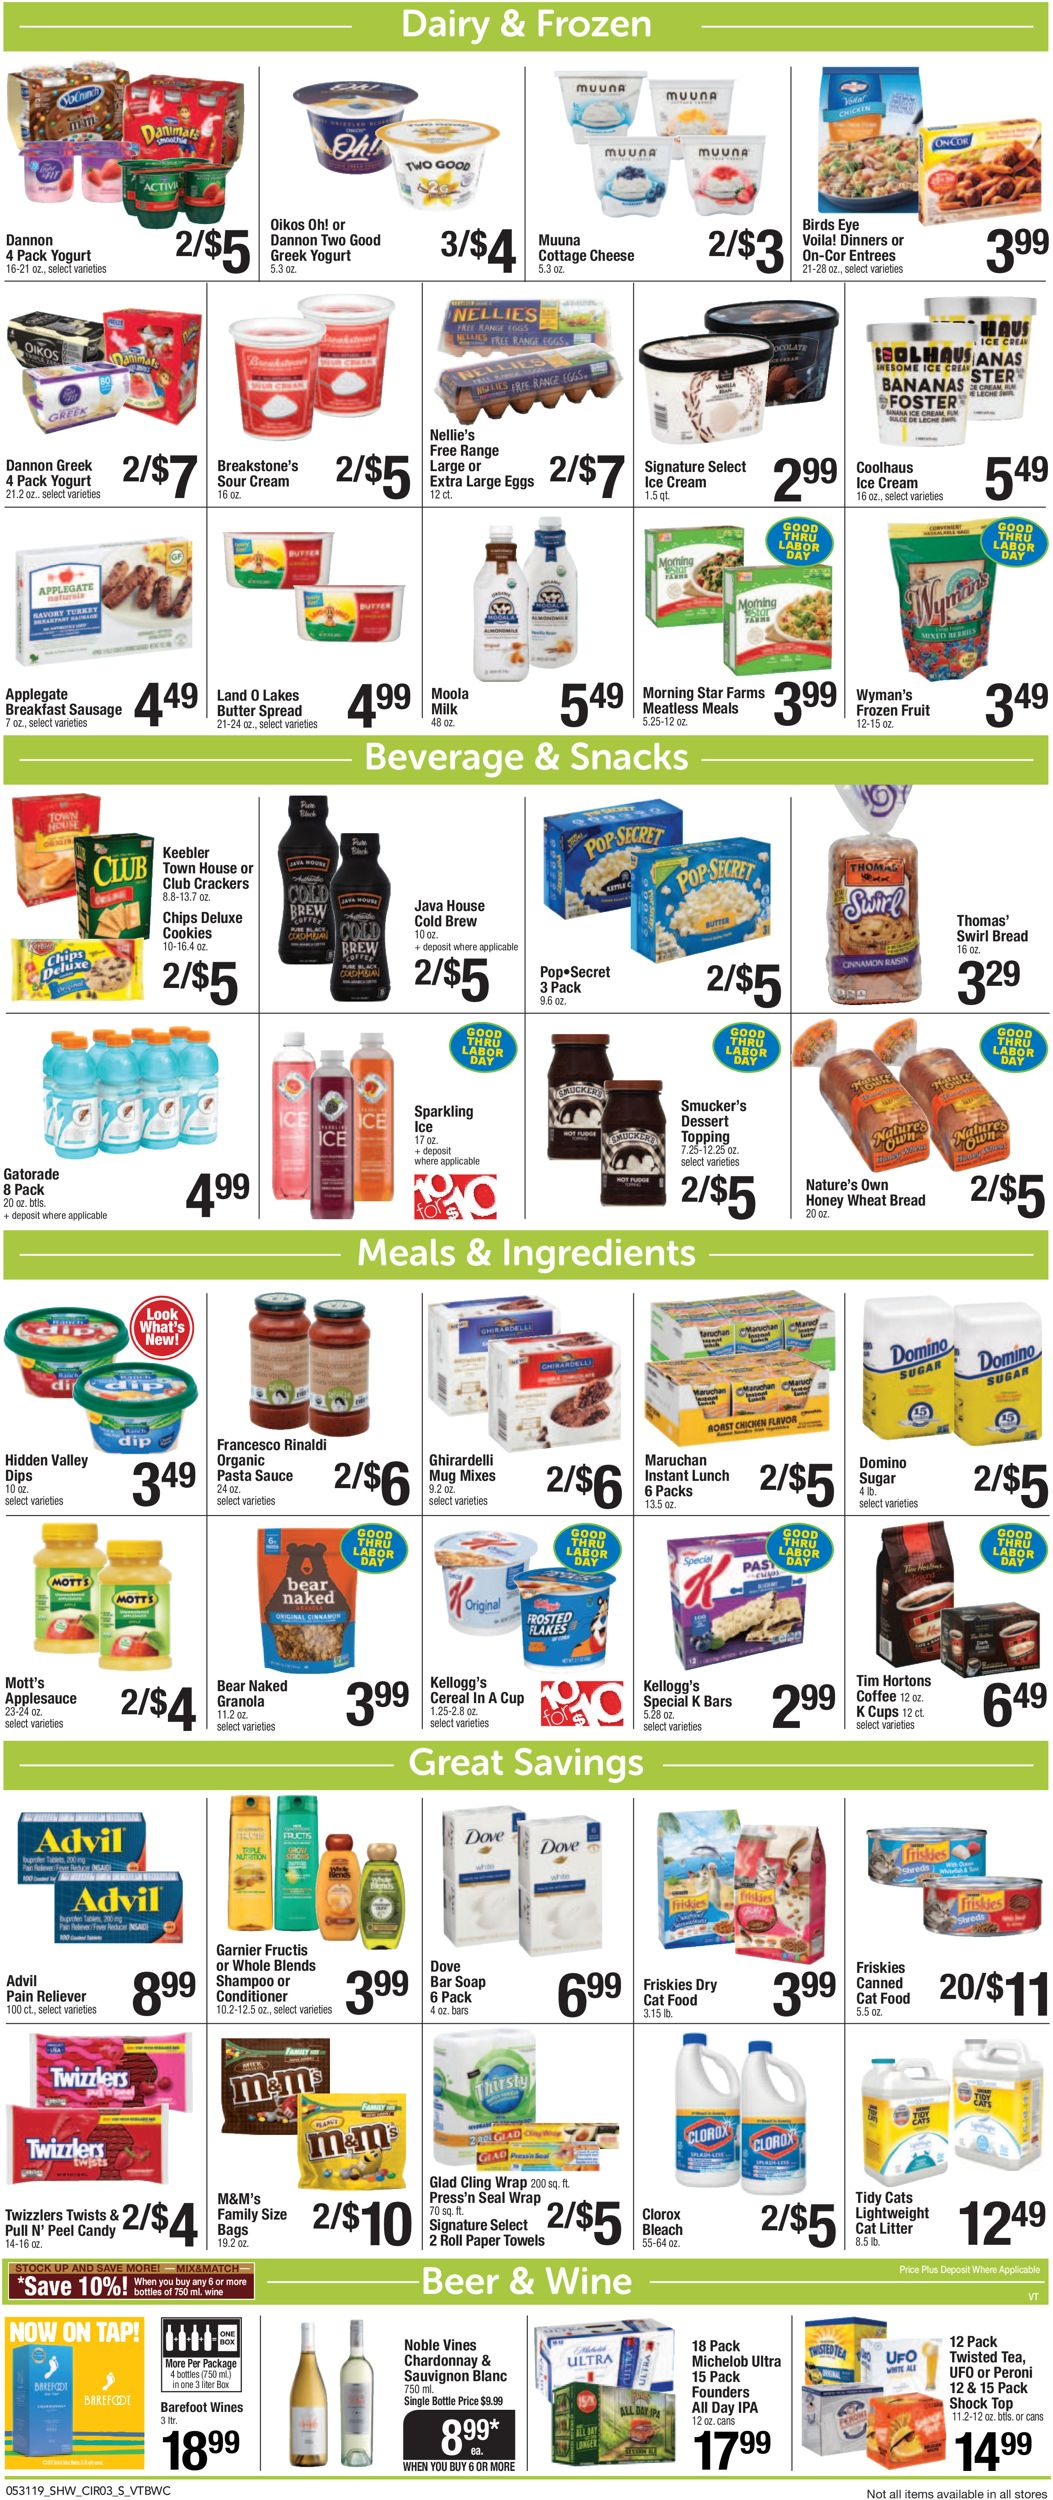 Shaw's Current weekly ad 05/31 - 06/06/2019 [3] - frequent